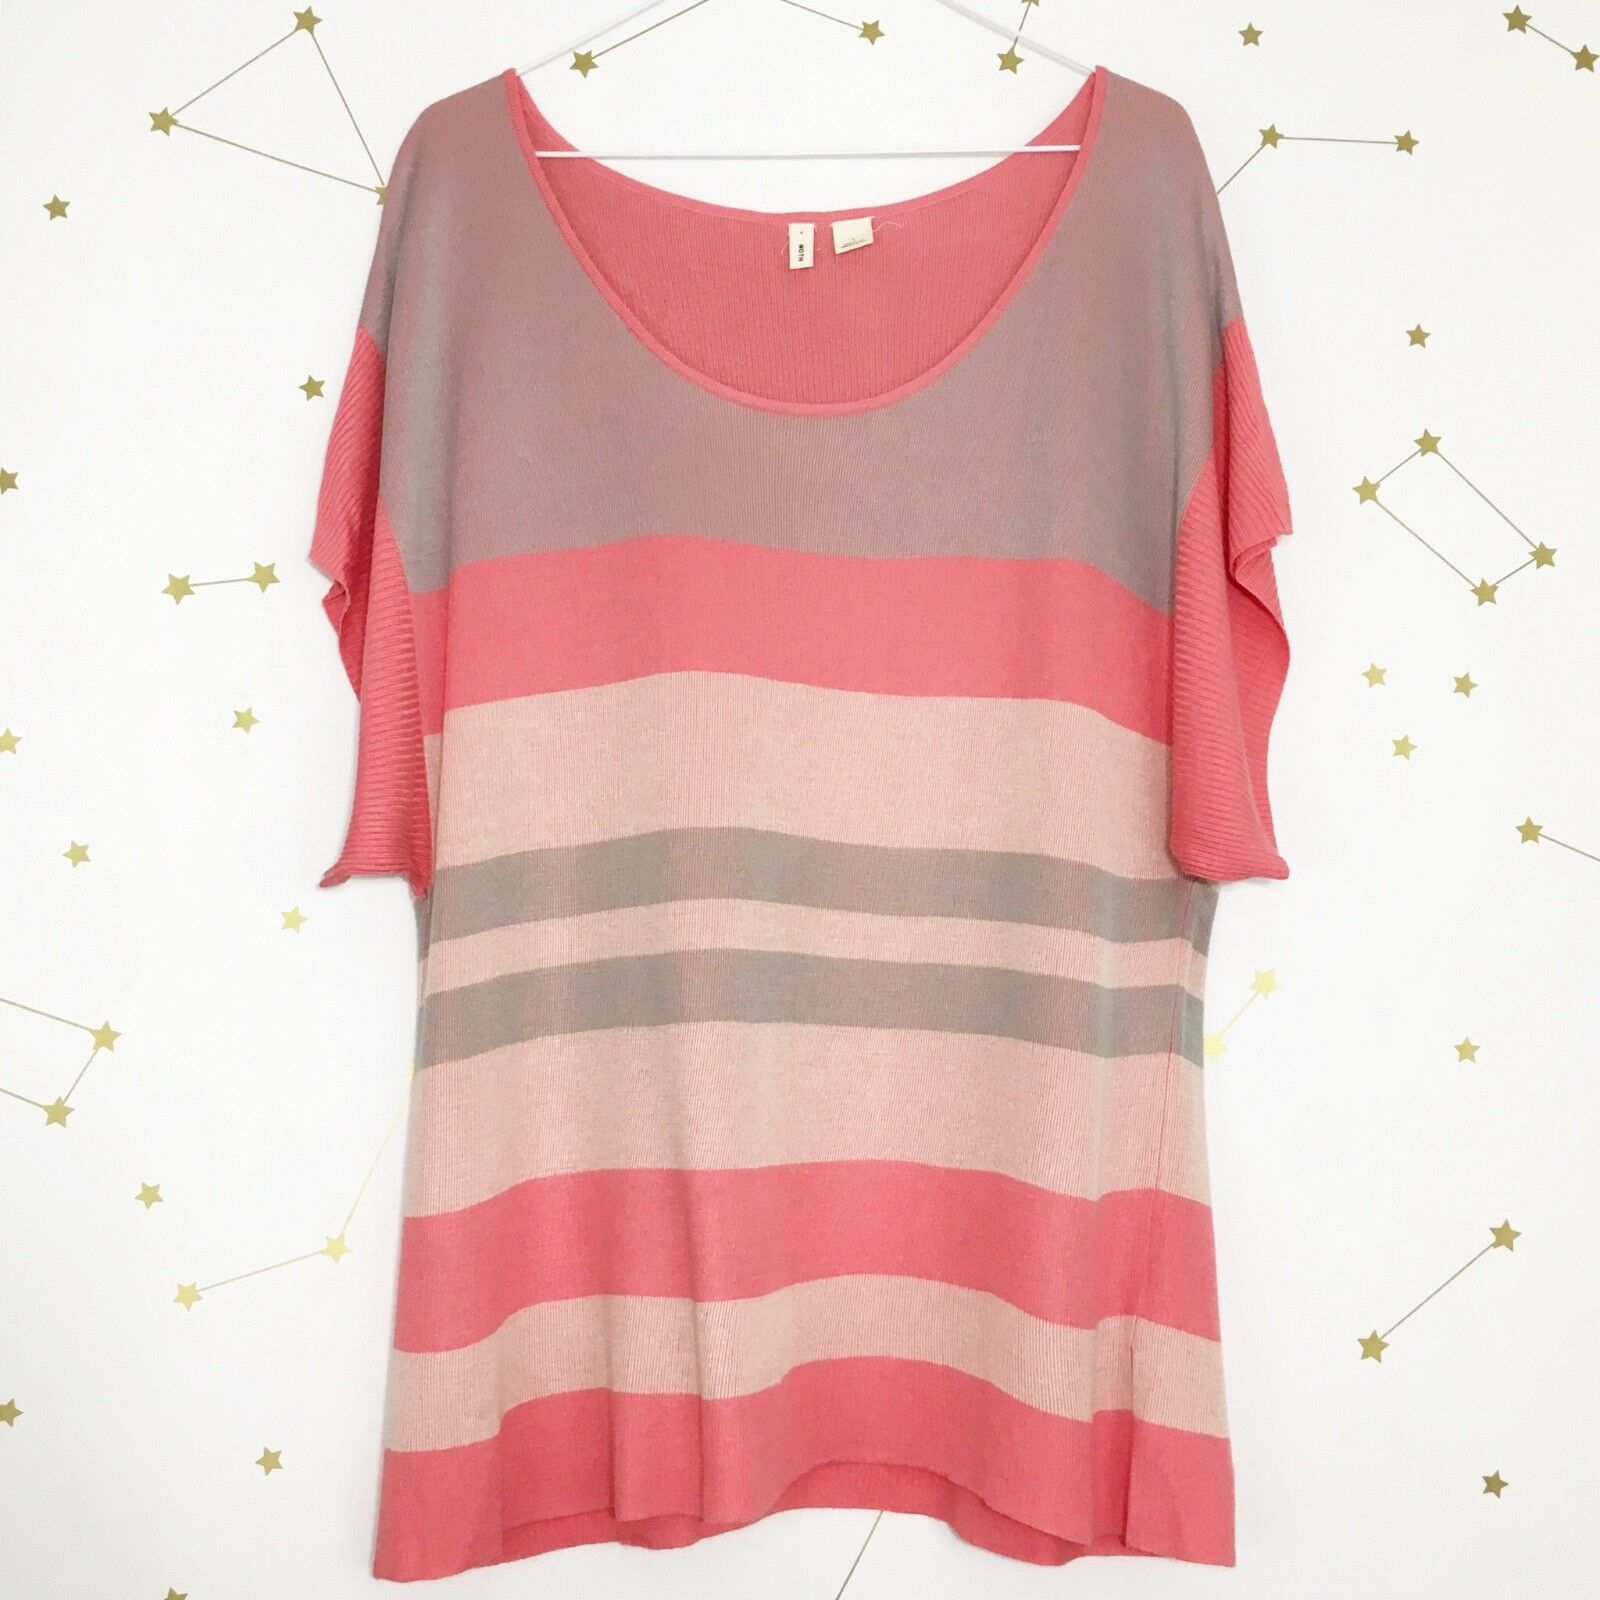 Anthropologie Moth Sweater Size Large Pink Striped Short Sleeve Boxy Setting Sun